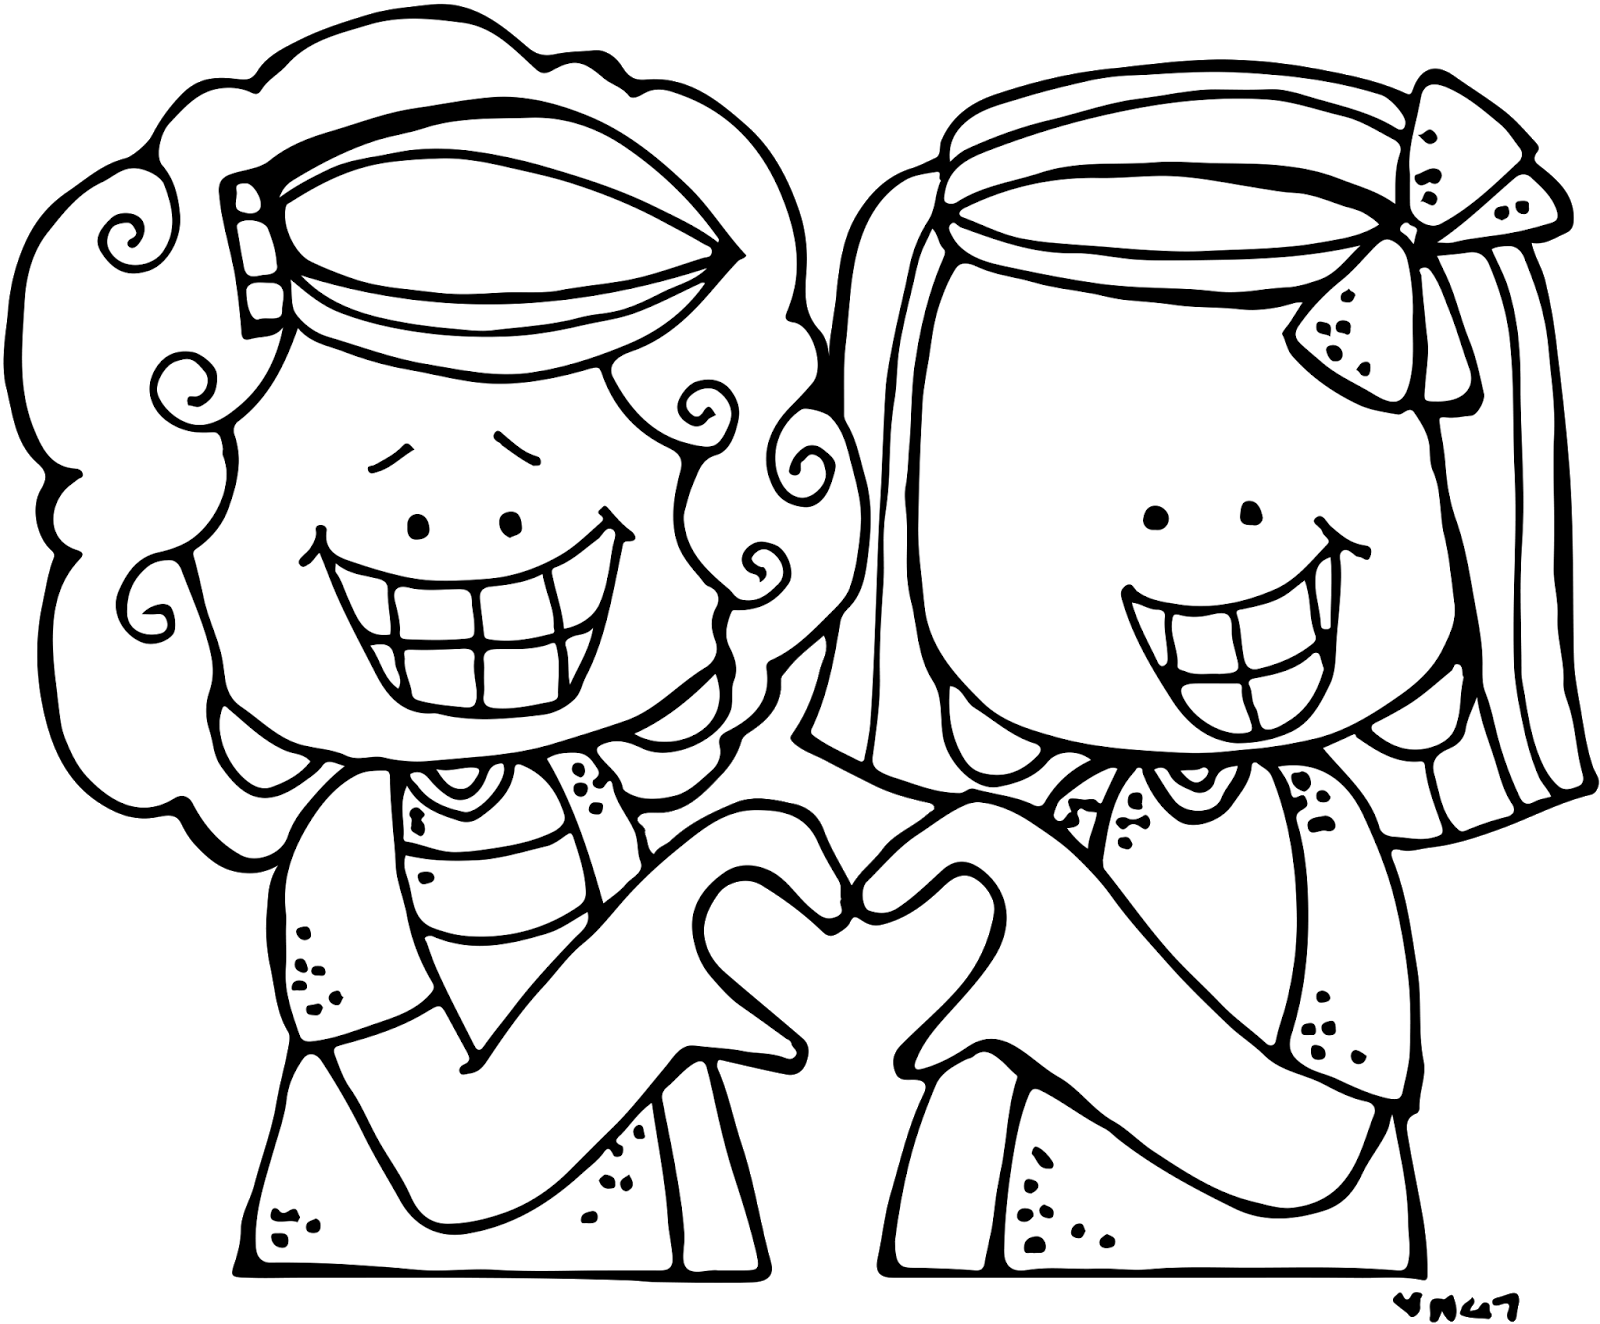 Crayons clipart black and white. Melonheadz love everyone free